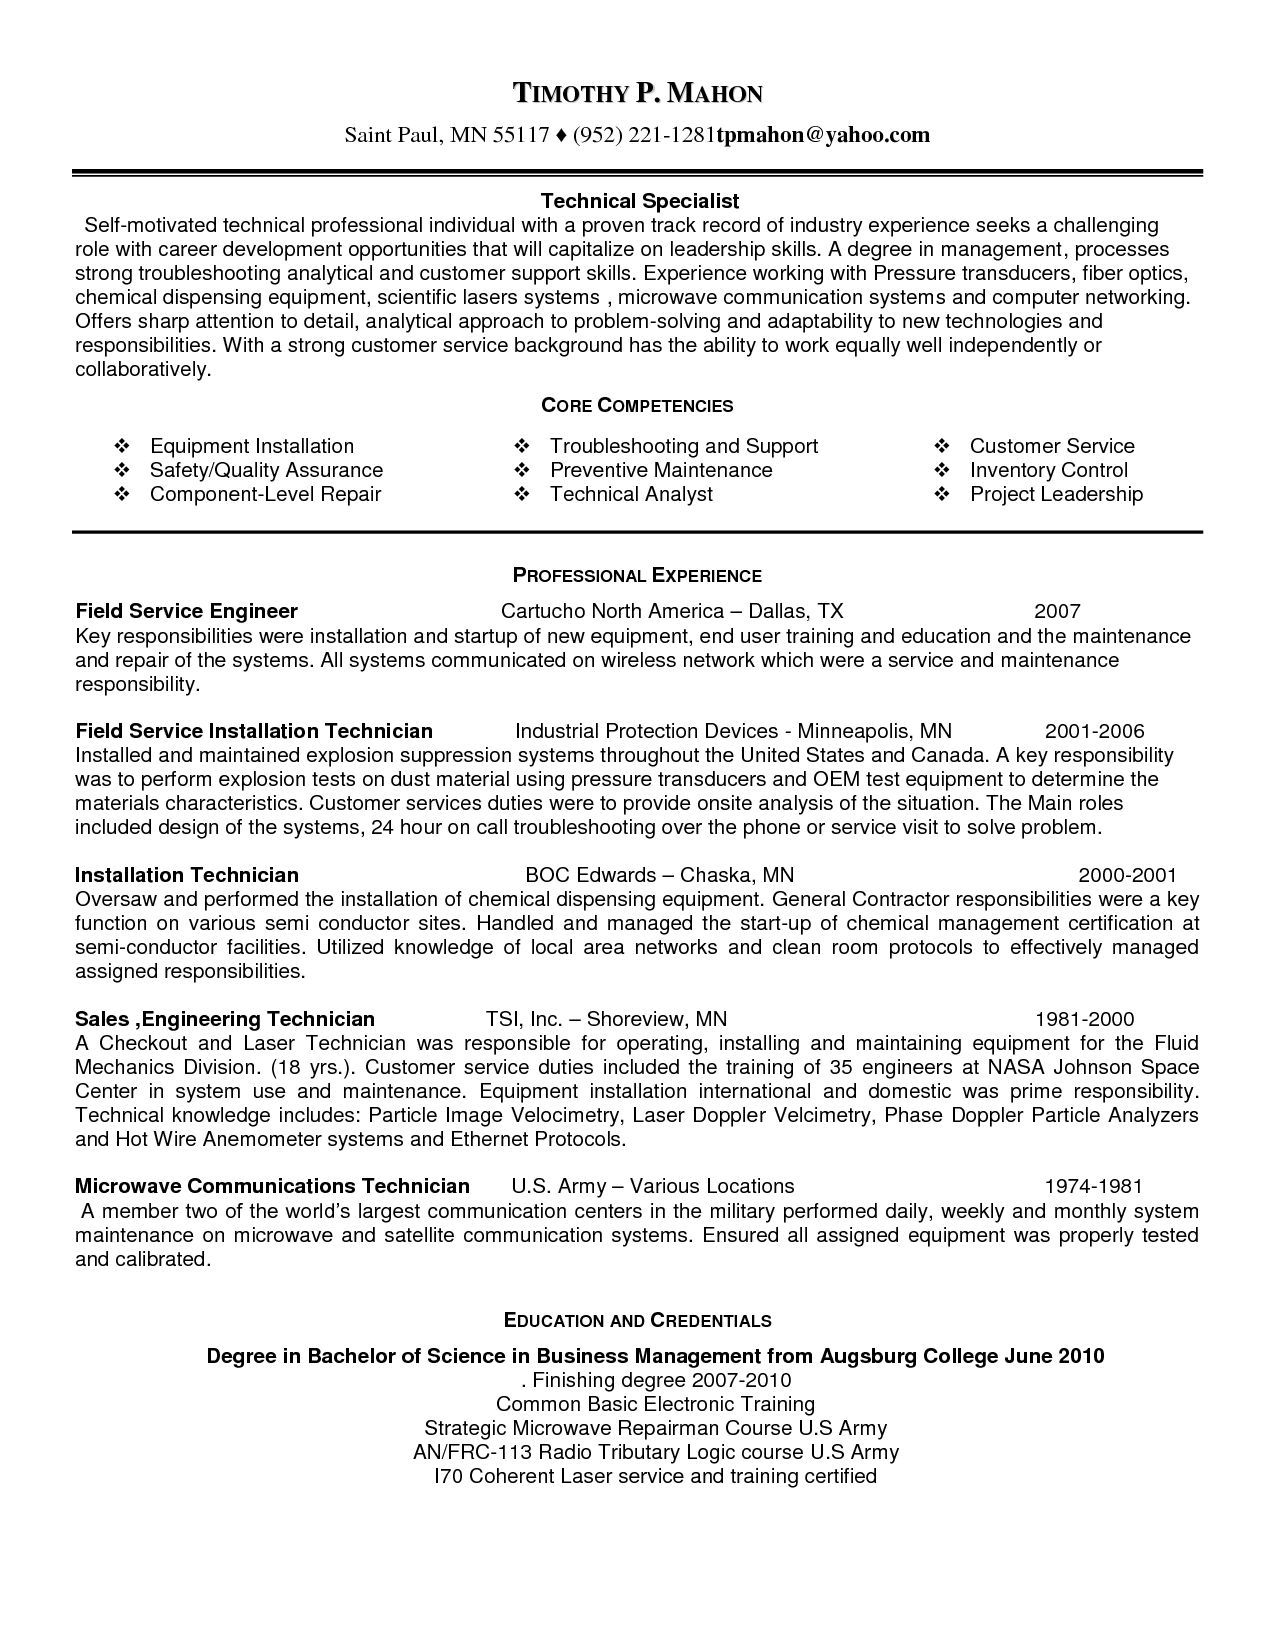 Auto Mechanic Resume Sample Impressive Sle Resume For Auto Mechanic 28 Images Car Mechanics Resume Sales .